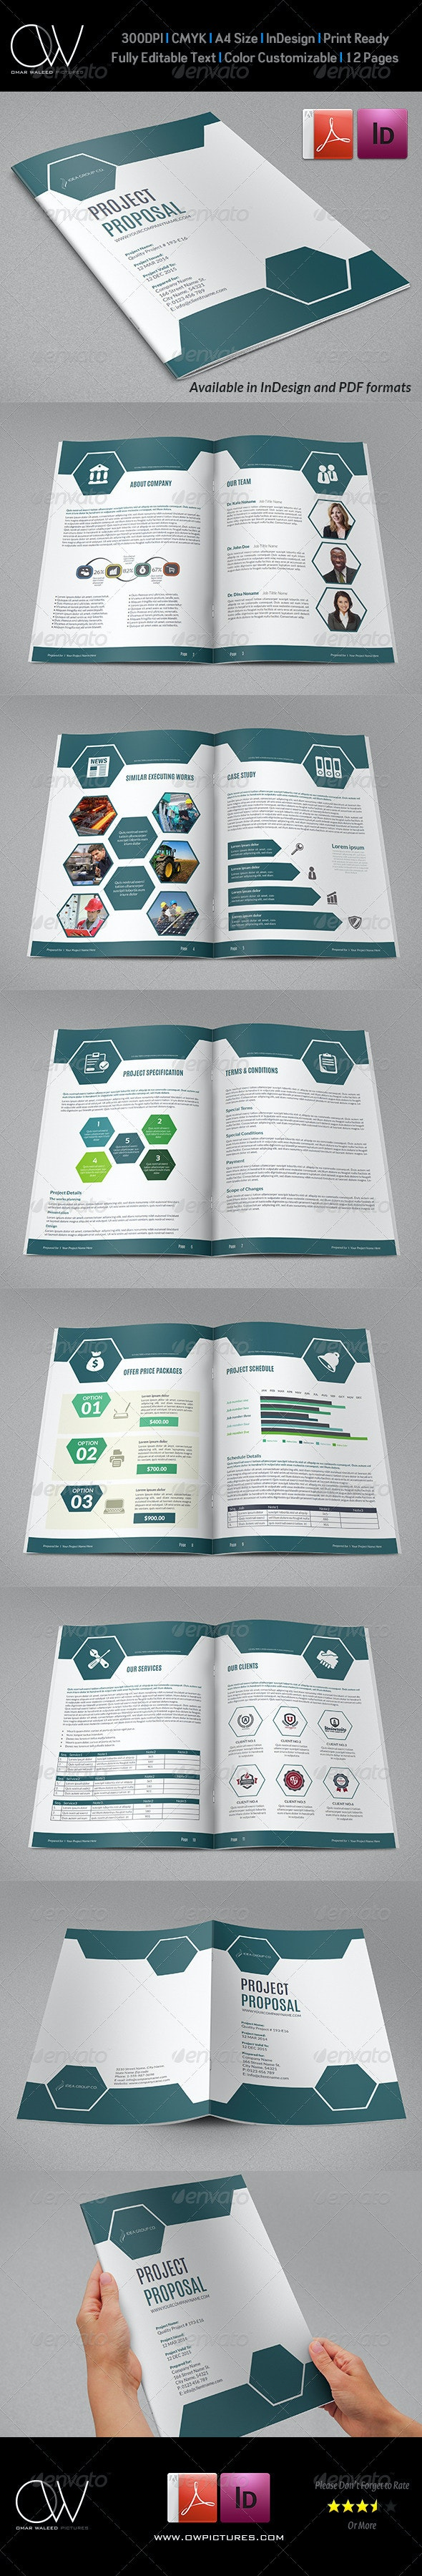 Company Proposal Brochure Template Vol.3 - Proposals & Invoices Stationery